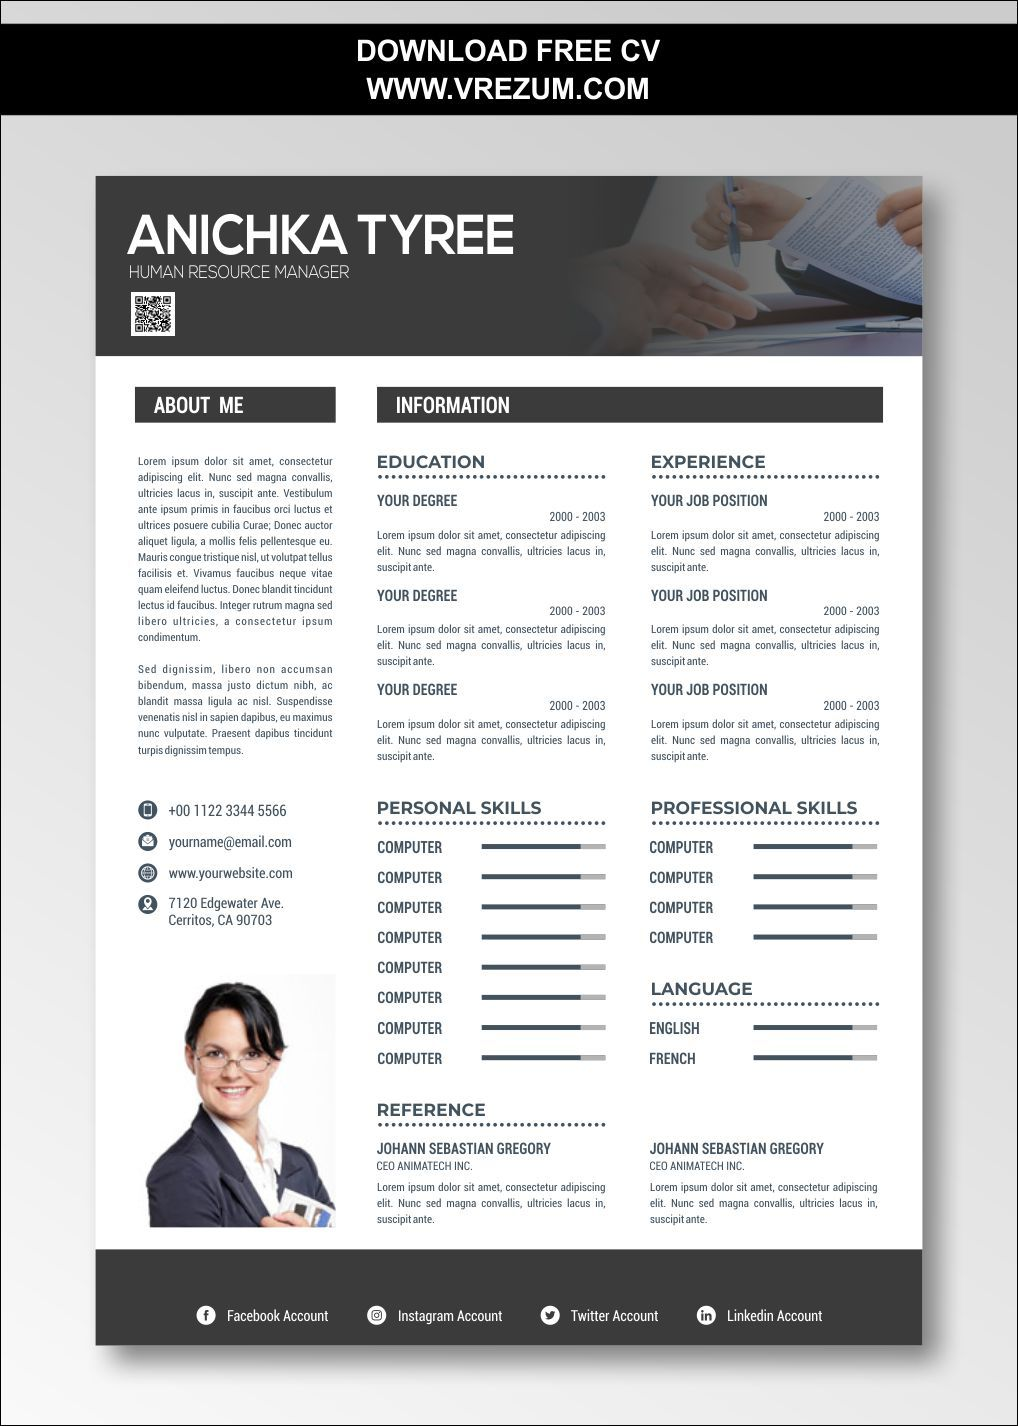 (EDITABLE) FREE CV Templates For HR Manager in 2020 Cv